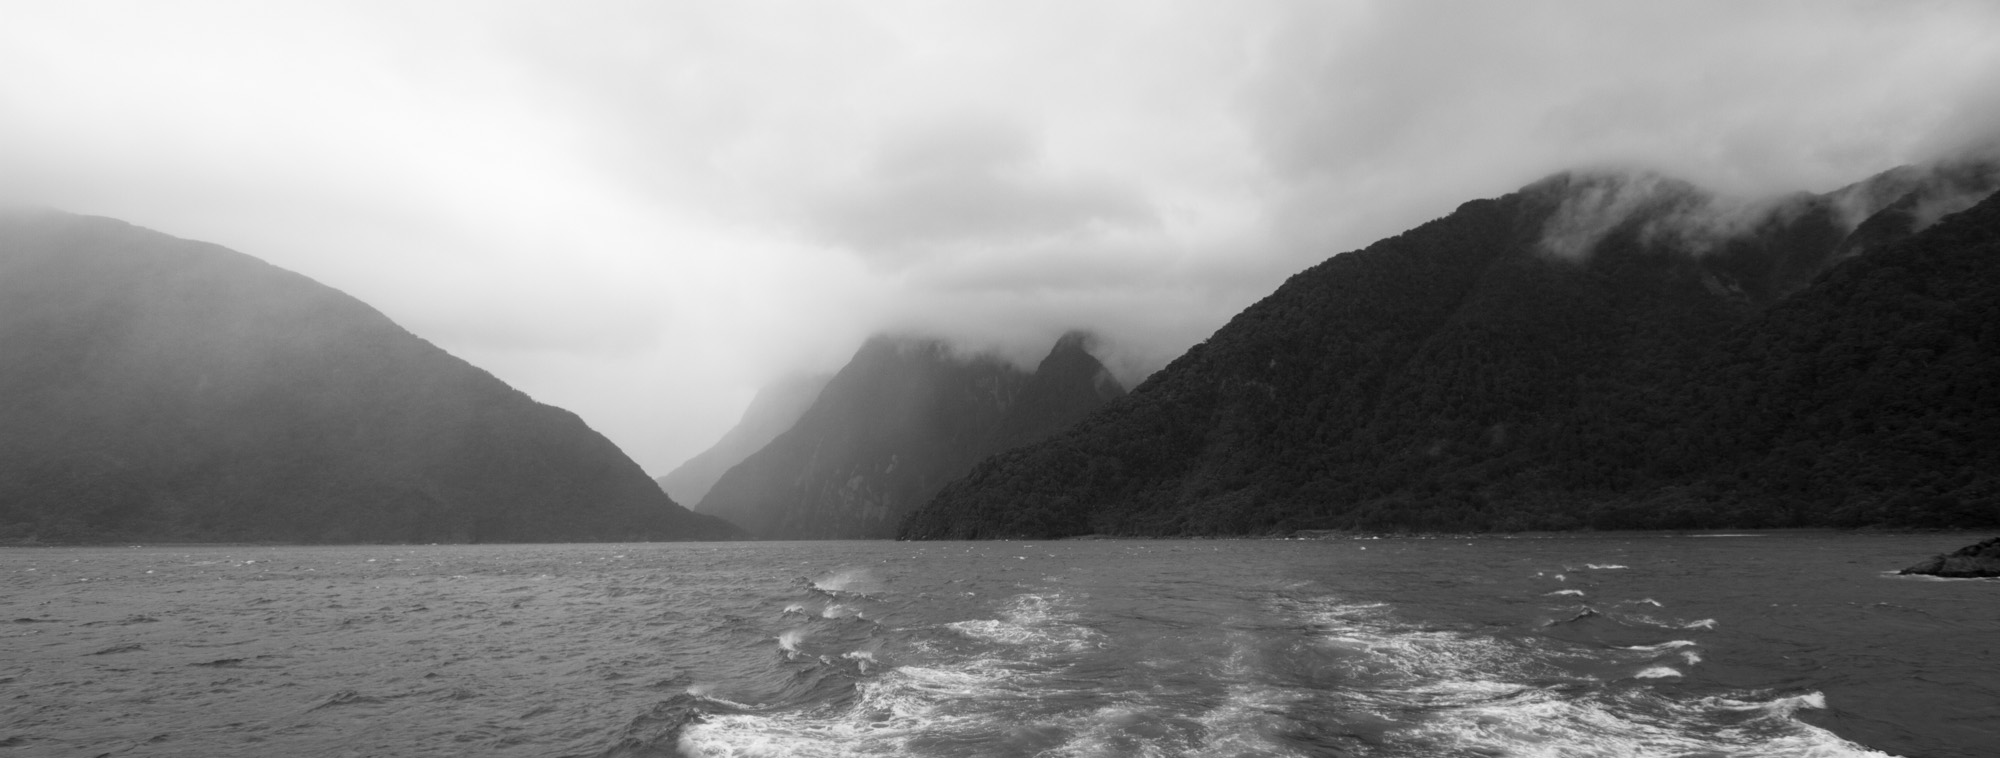 Milford Sound (slide)-1.jpg